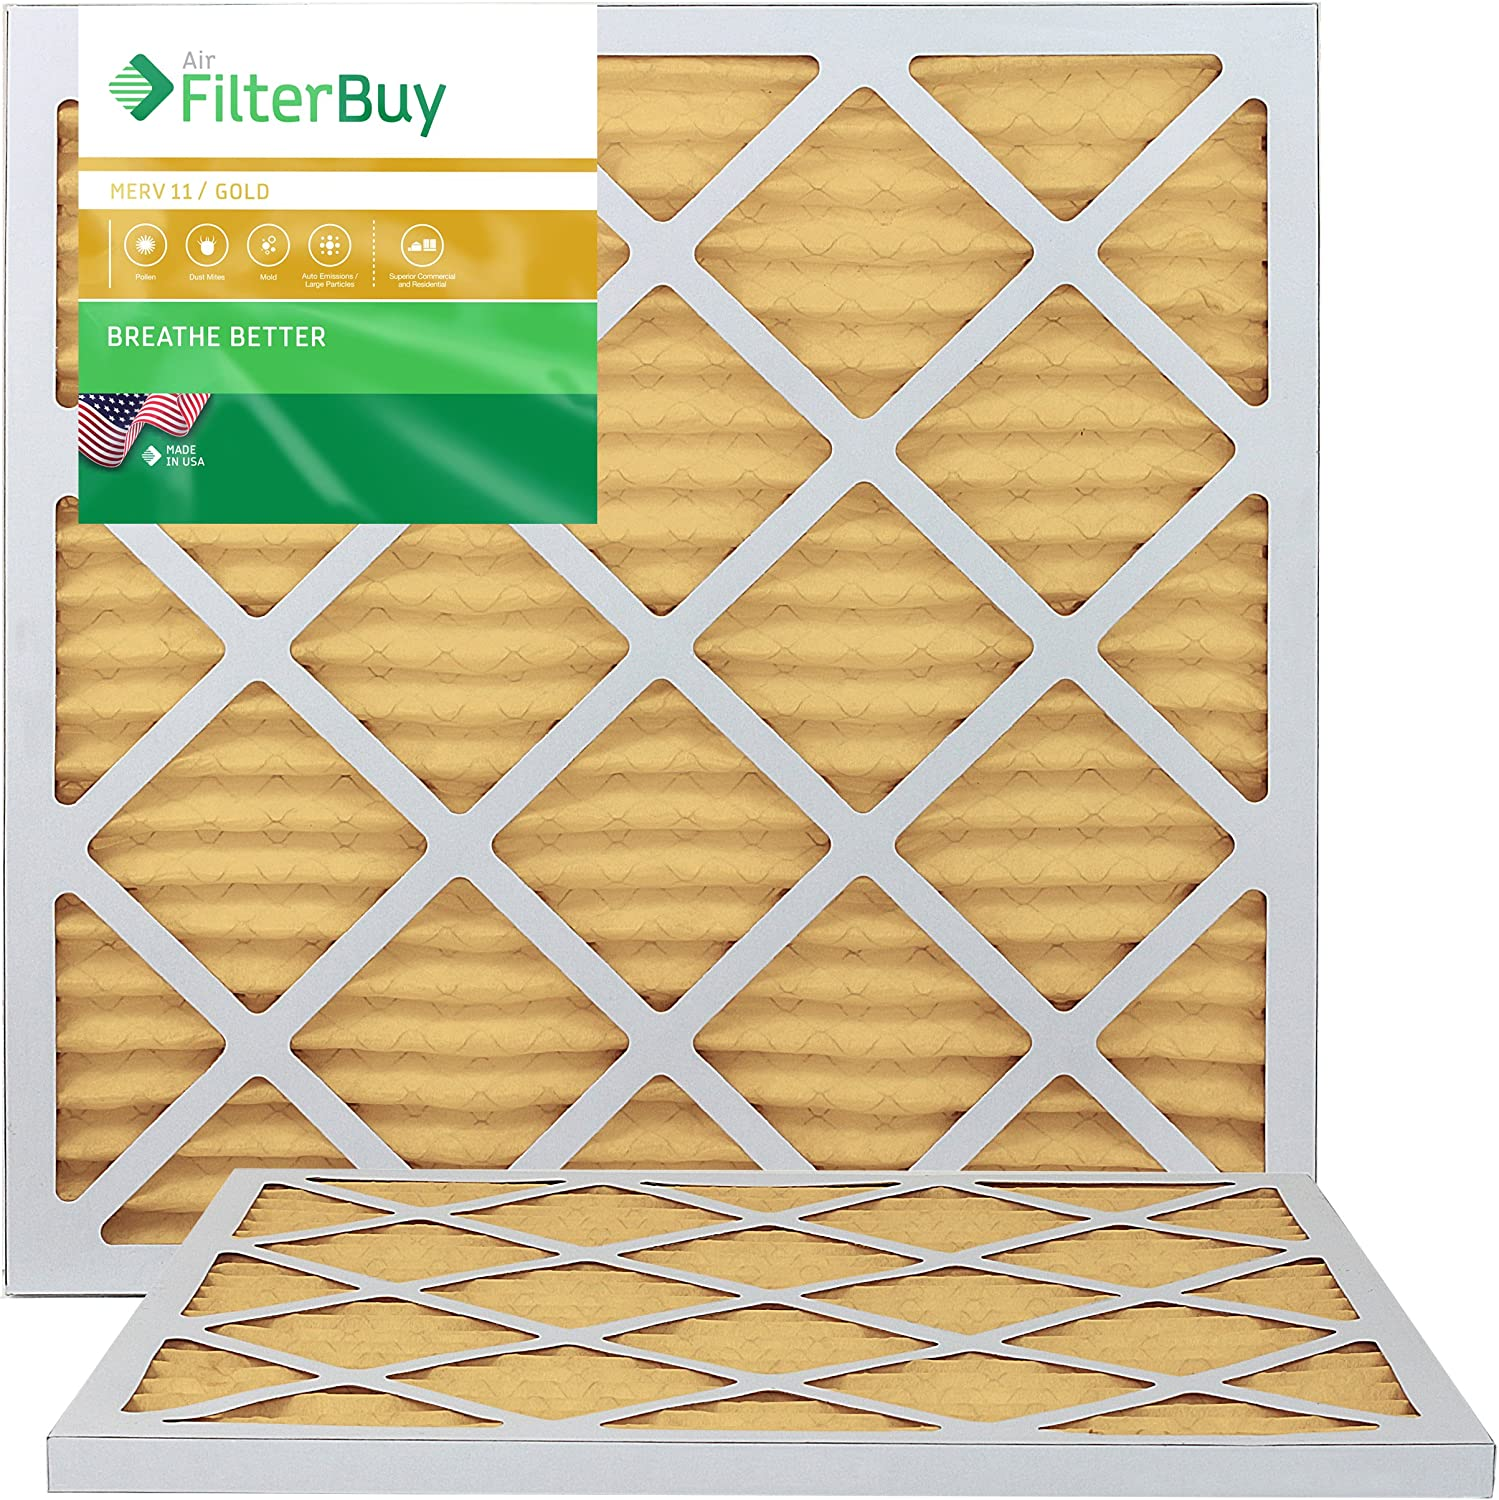 FilterBuy 20x21.5x1 MERV 11 Pleated AC Furnace Air Filter, (Pack of 2 Filters), 20x21.5x1 – Gold